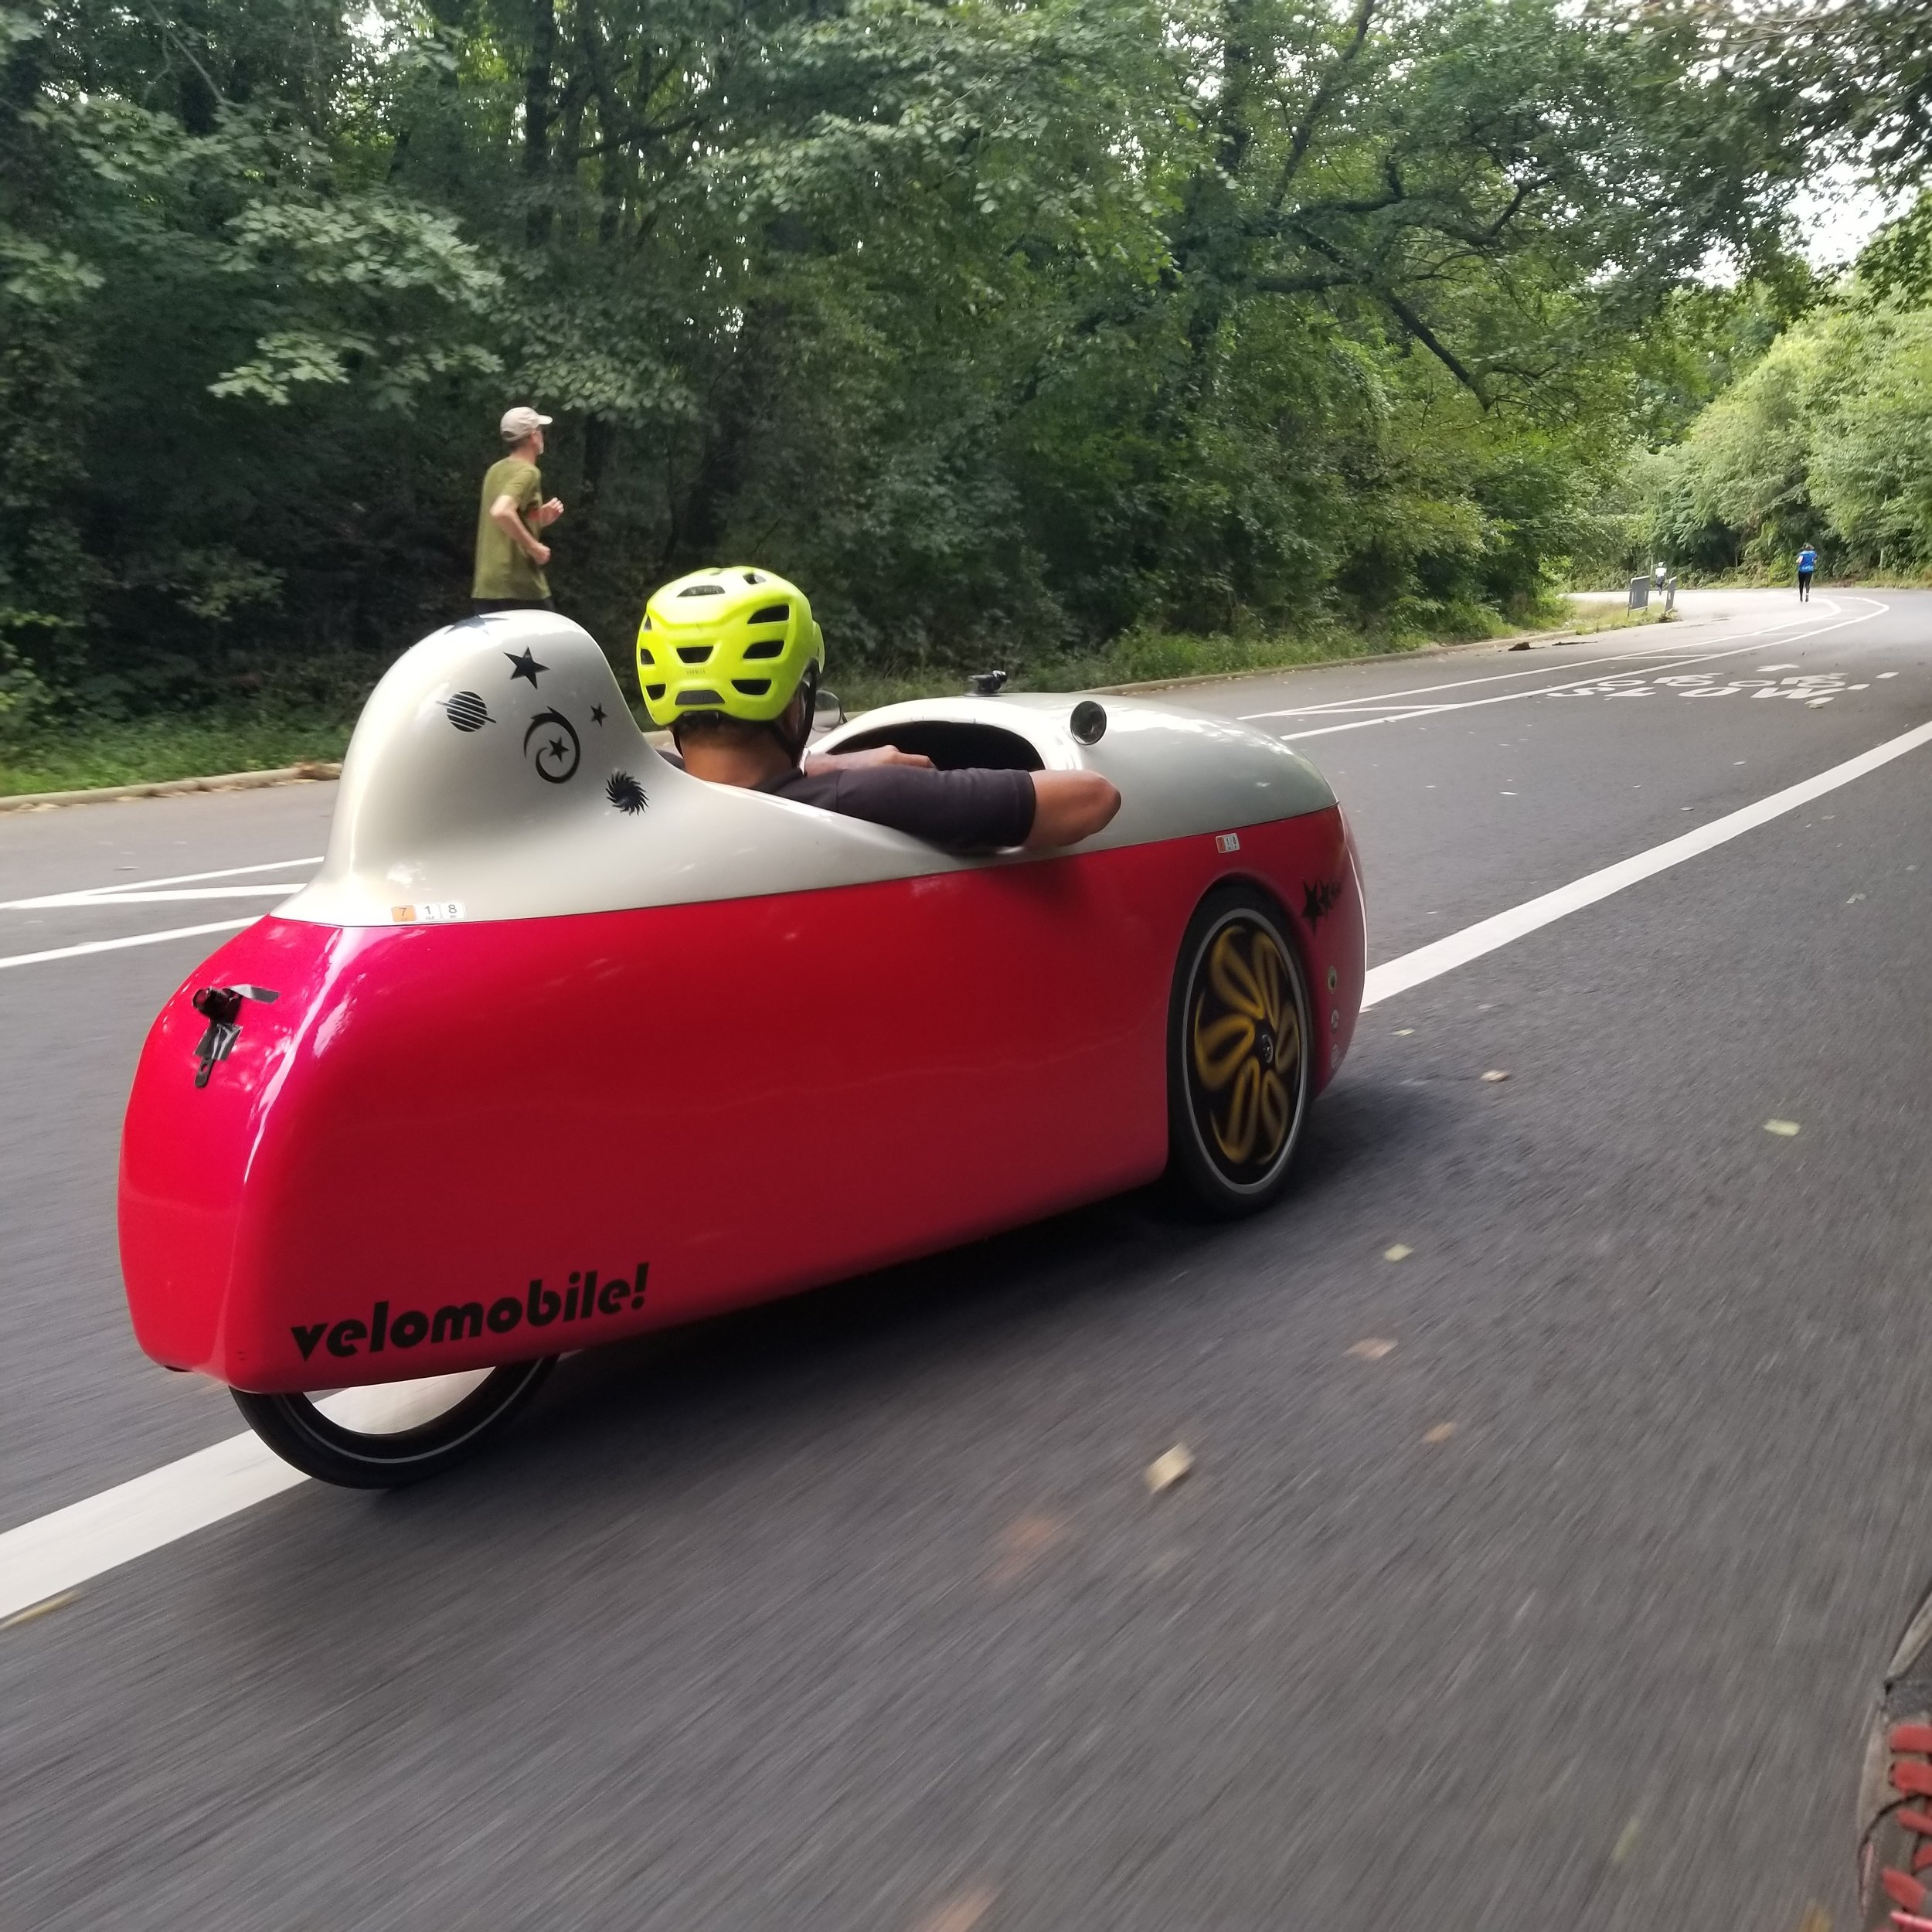 Mr Dubin, riding his Velomobile that just received new suspension and struts at  718 Cyclery